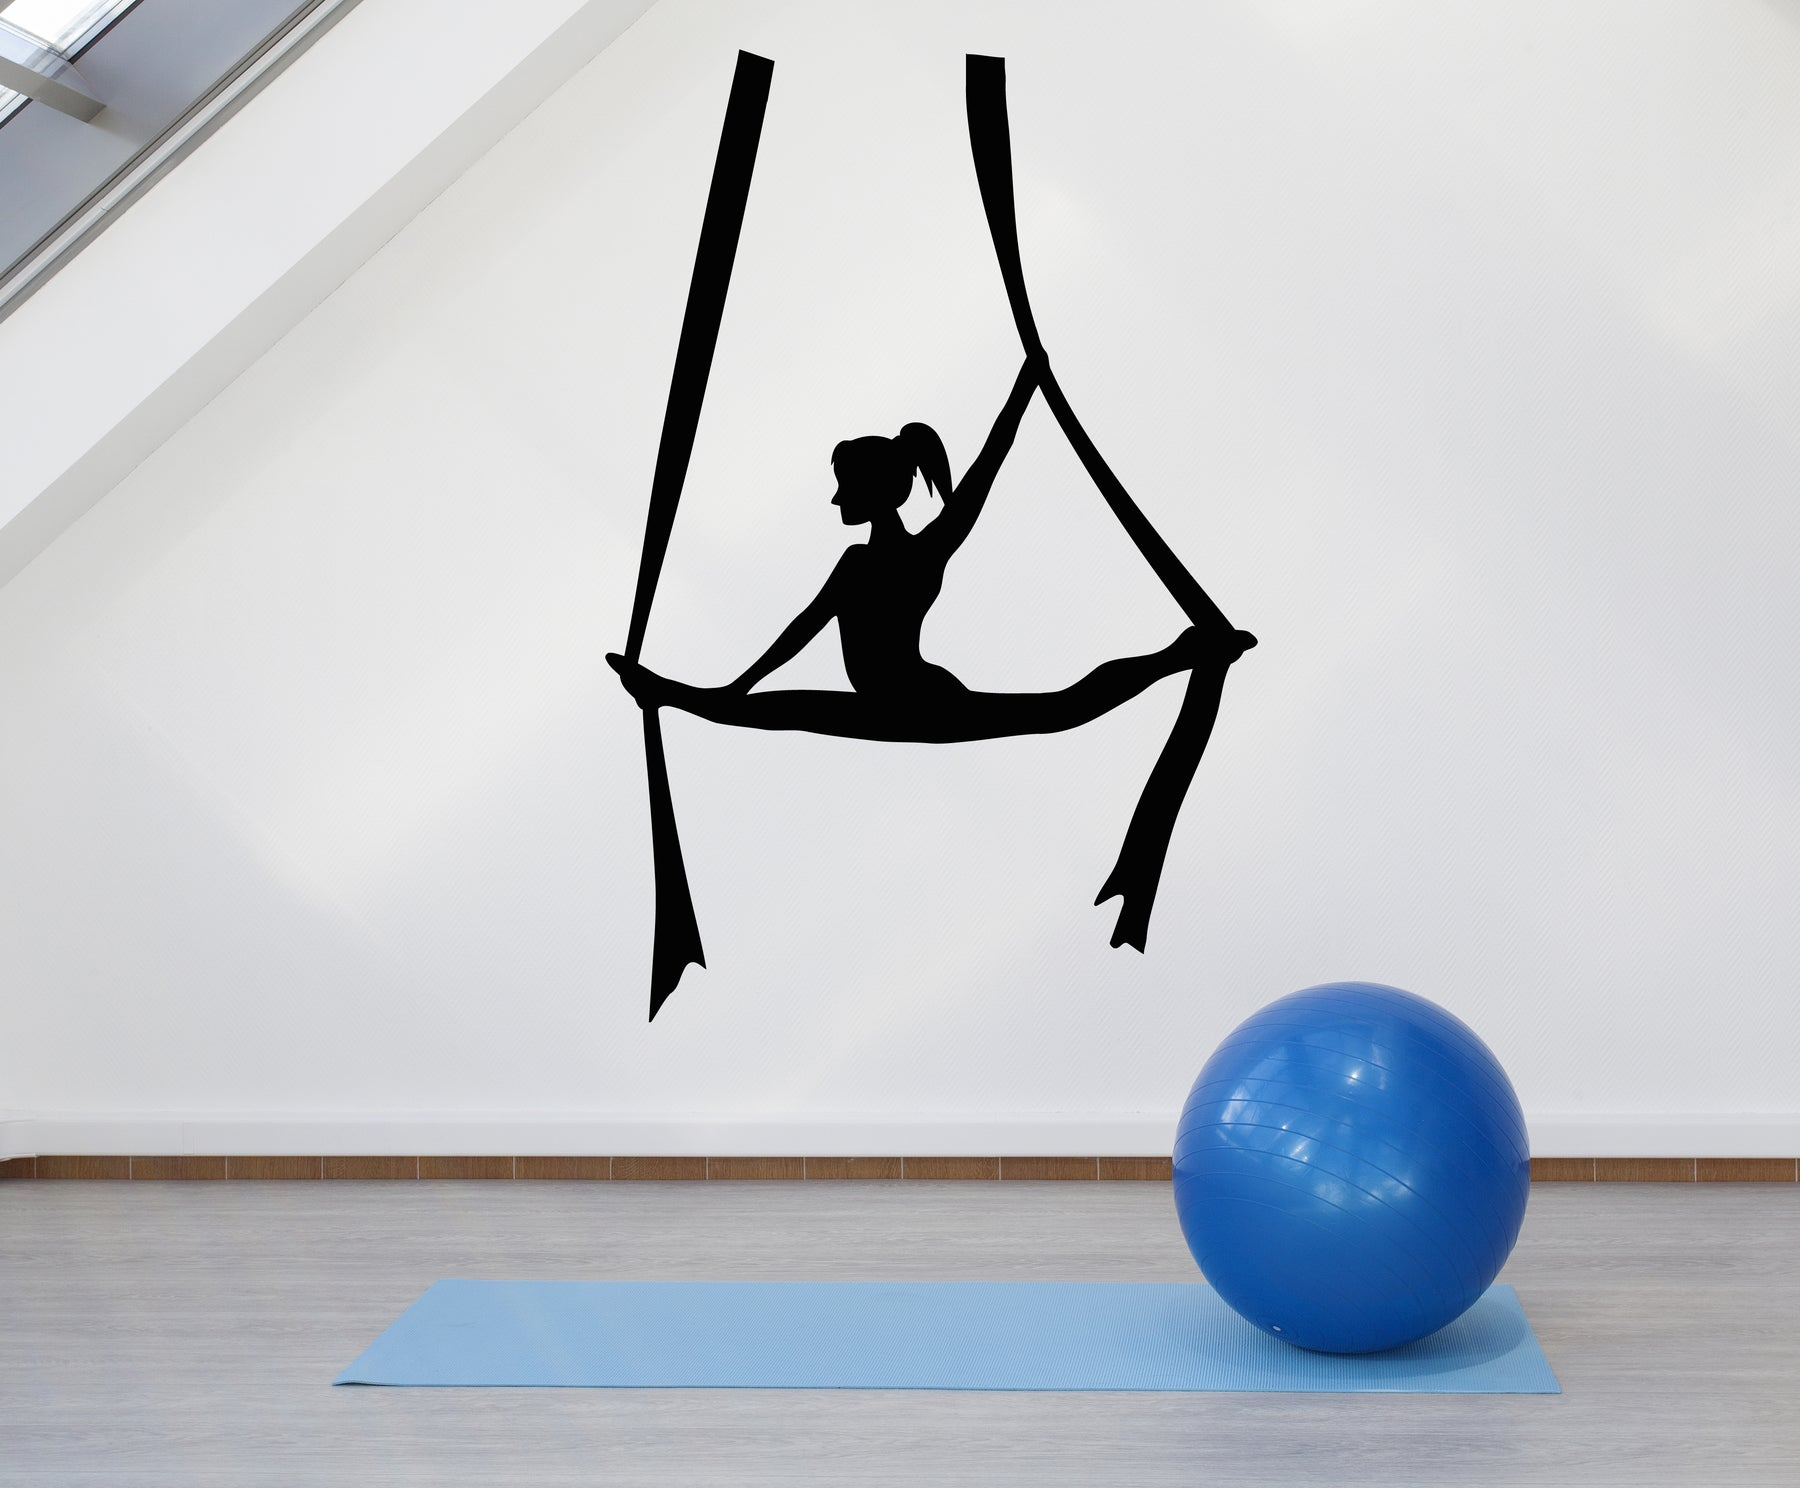 Vinyl Wall Decal Fly Aerial Yoga Balance Pose Girl Zen Centre Meditation Stickers Mural (g876)